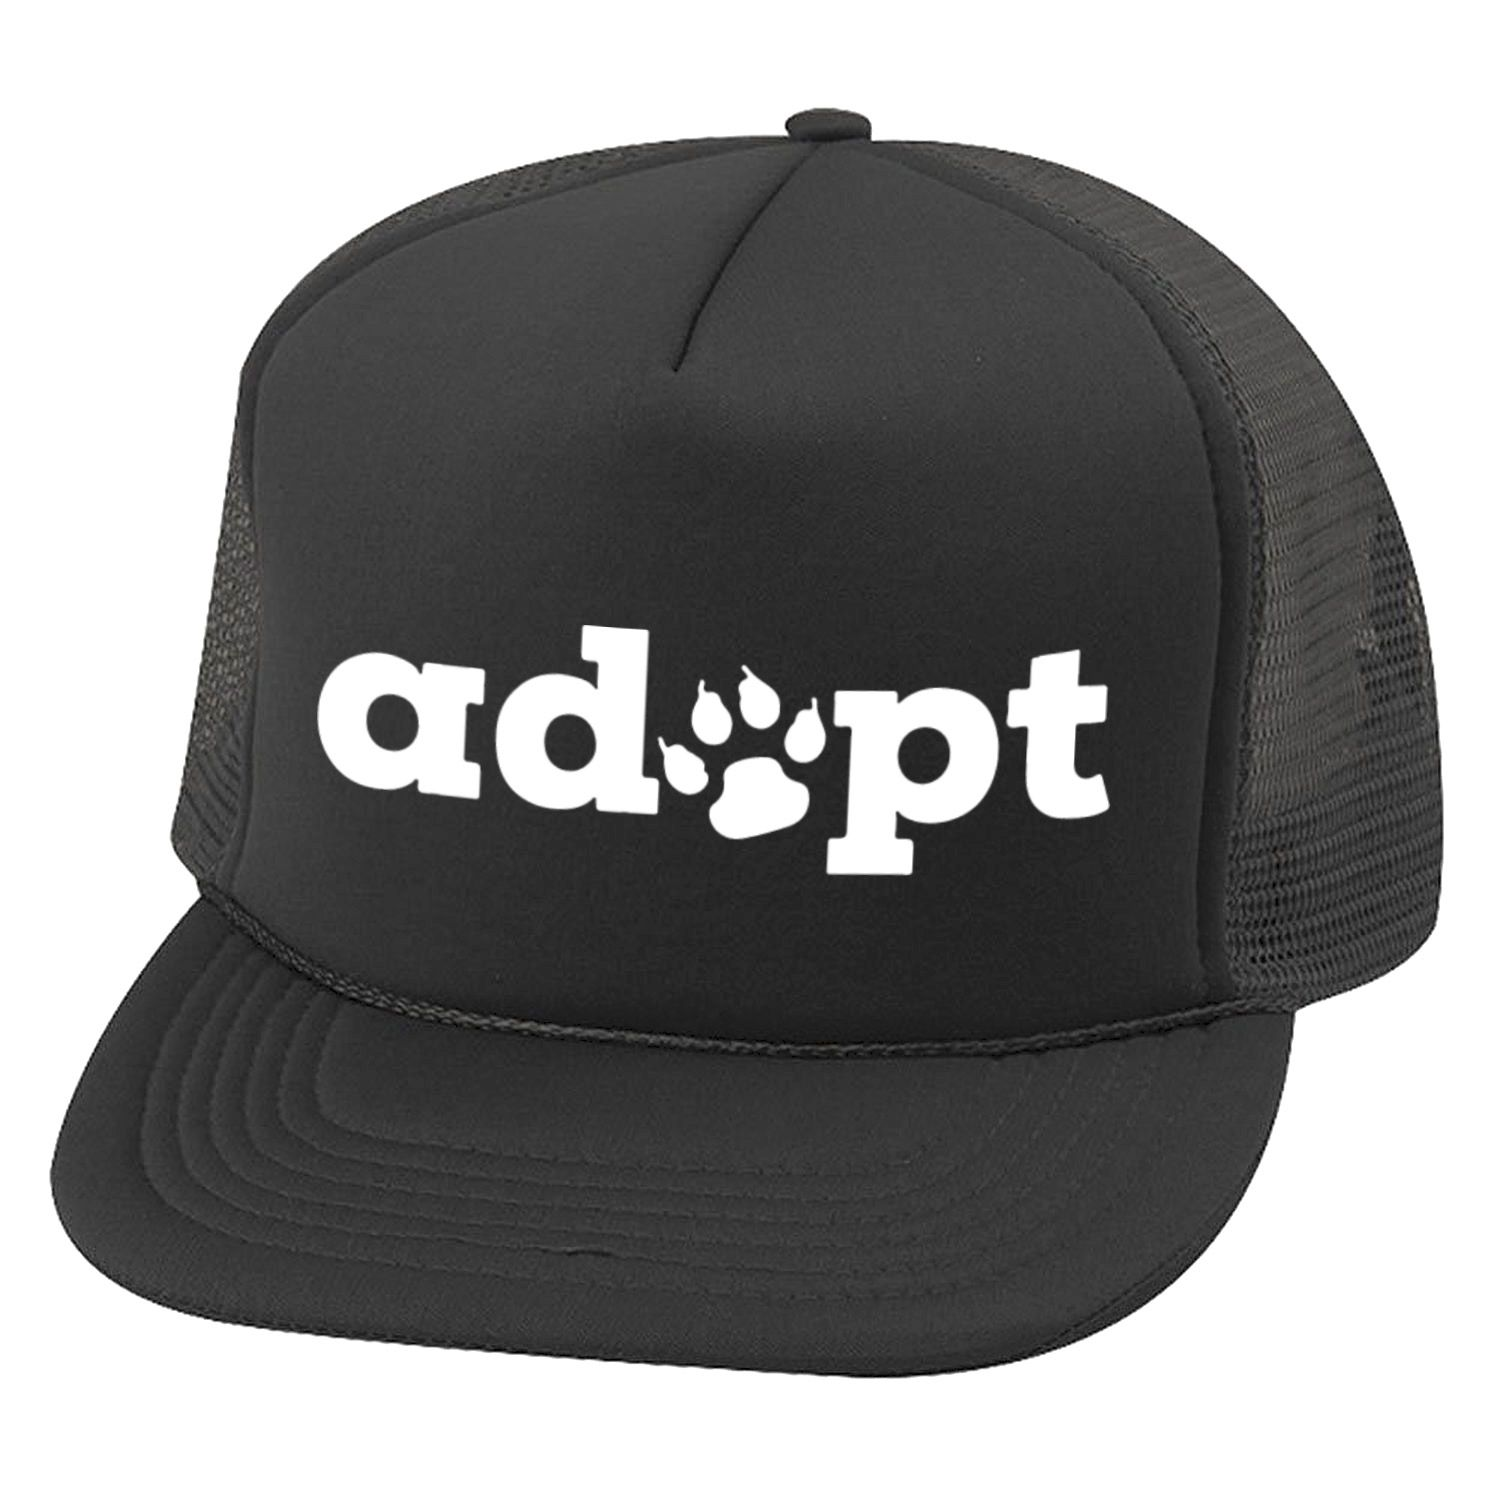 Adopt Paw Trucker Hat | Hats, Hat sizes, Style snaps